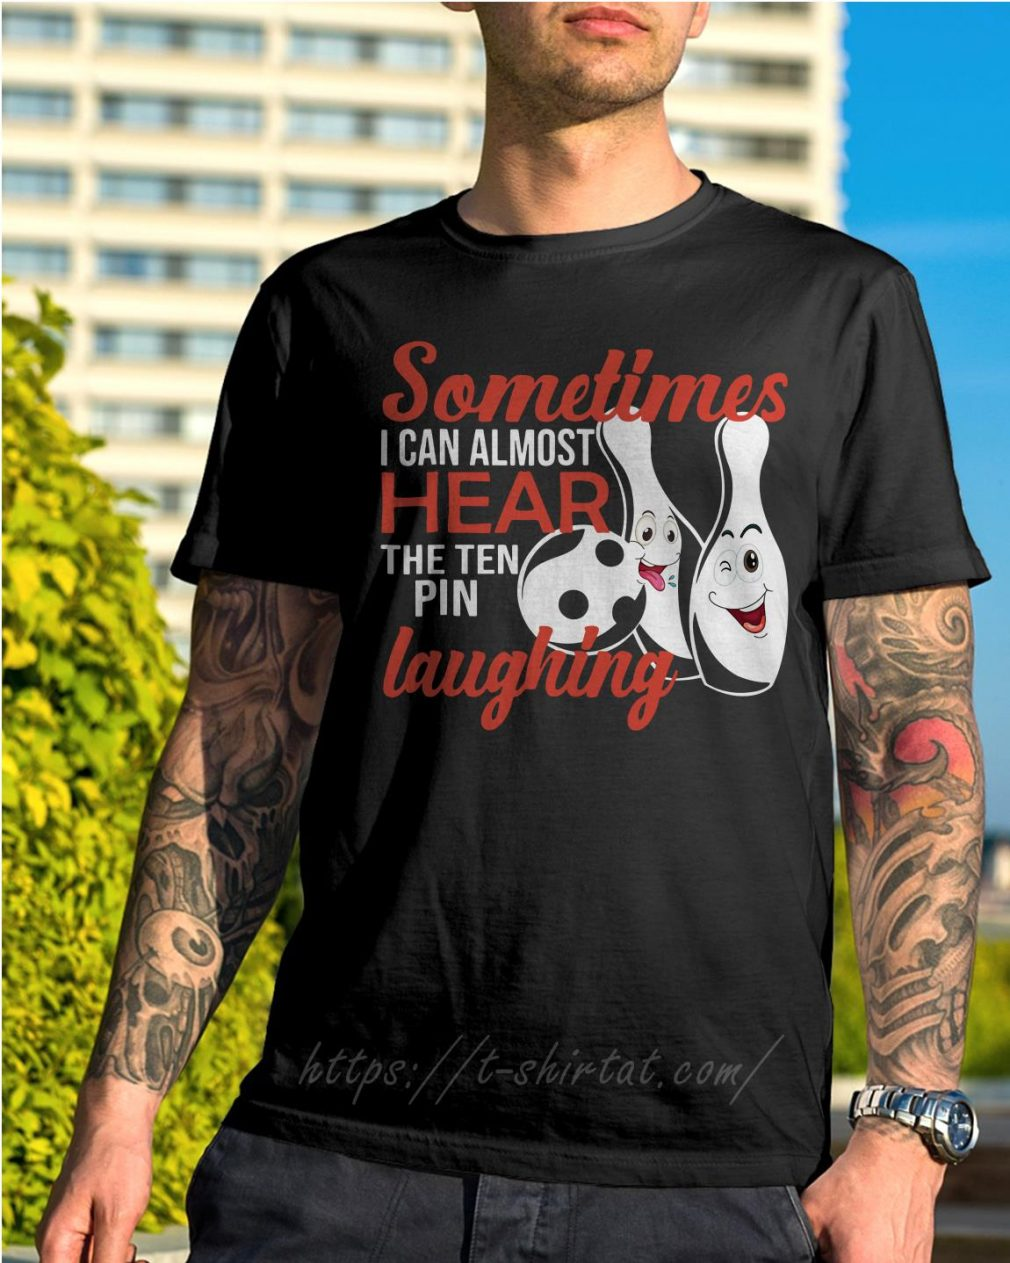 Sometimes I can almost hear the ten pin laughing shirt